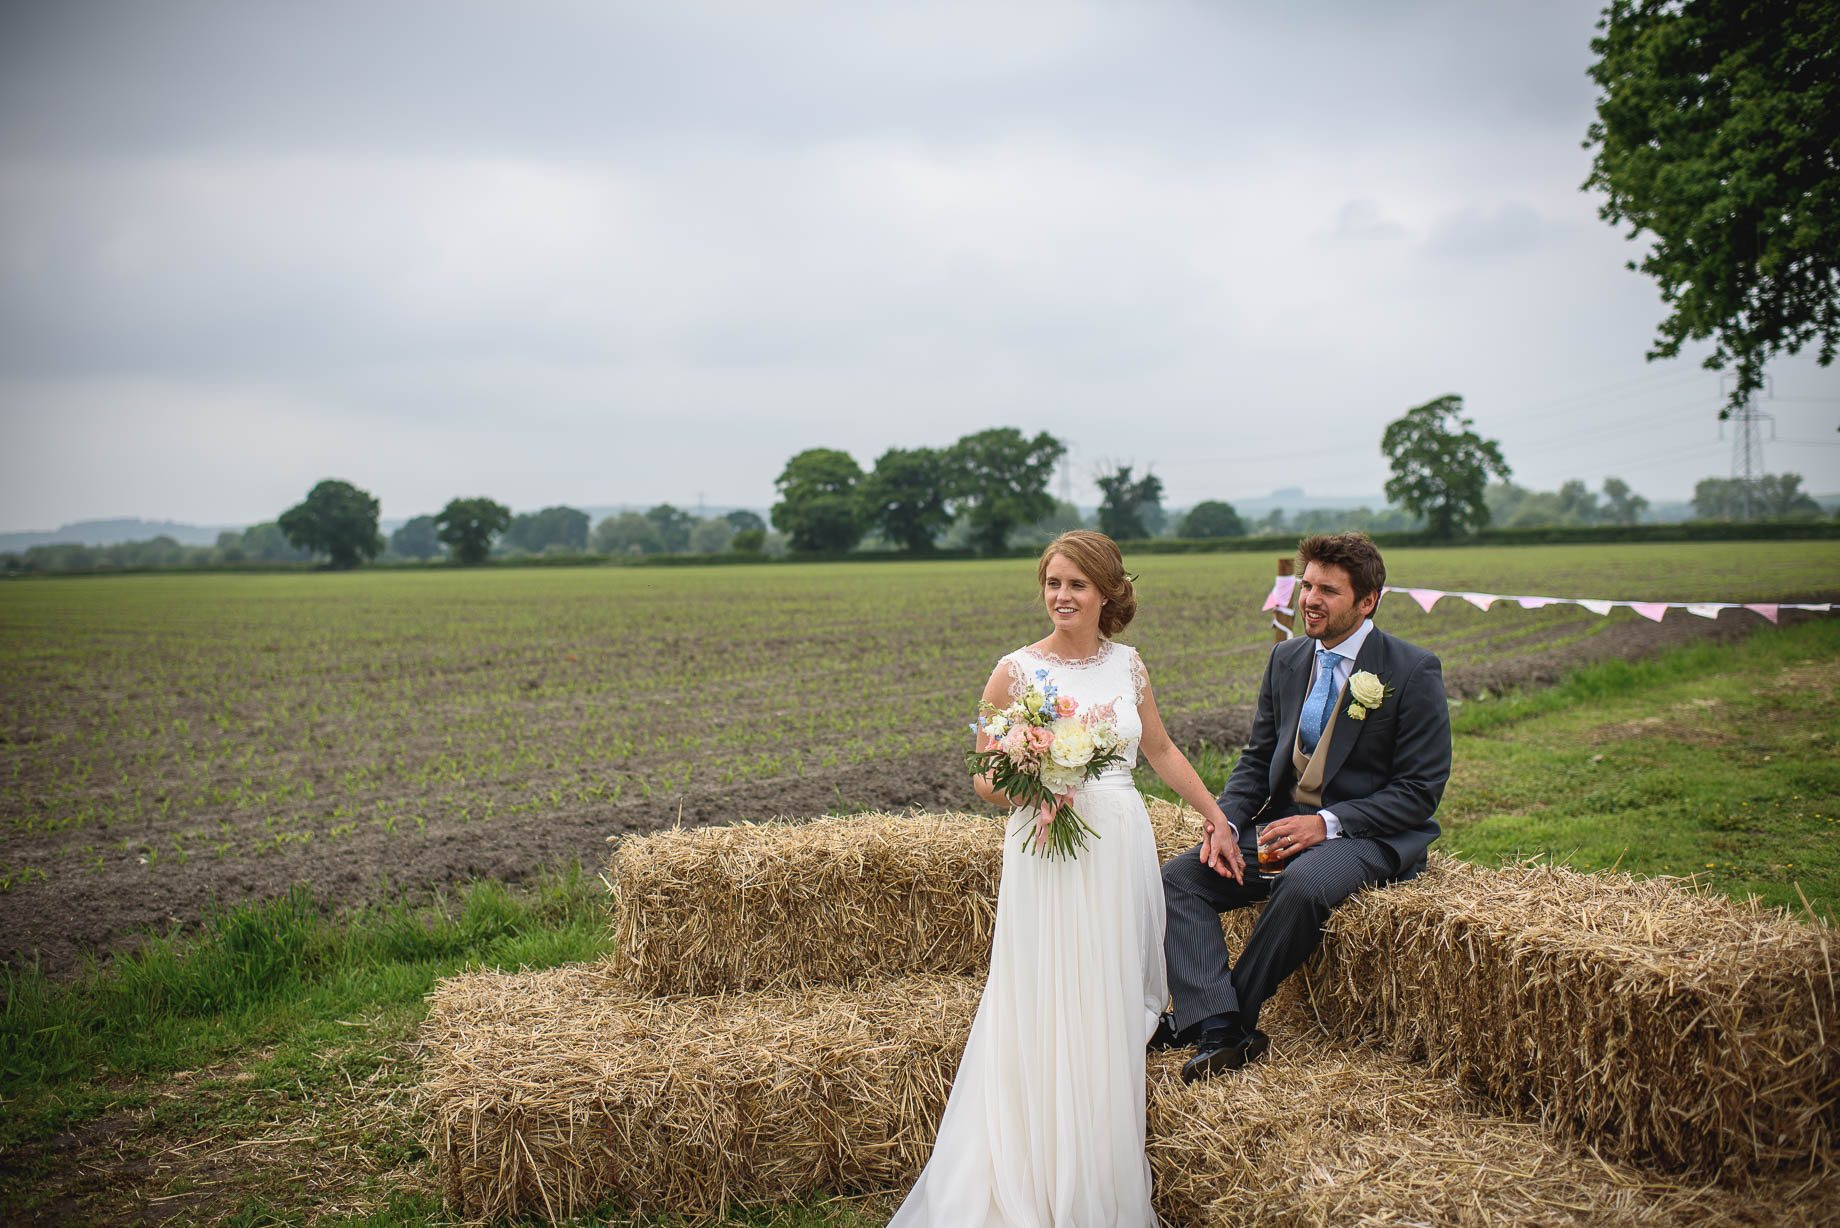 Wiltshire wedding photography by Guy Collier - Lucie and Matt (115 of 198)